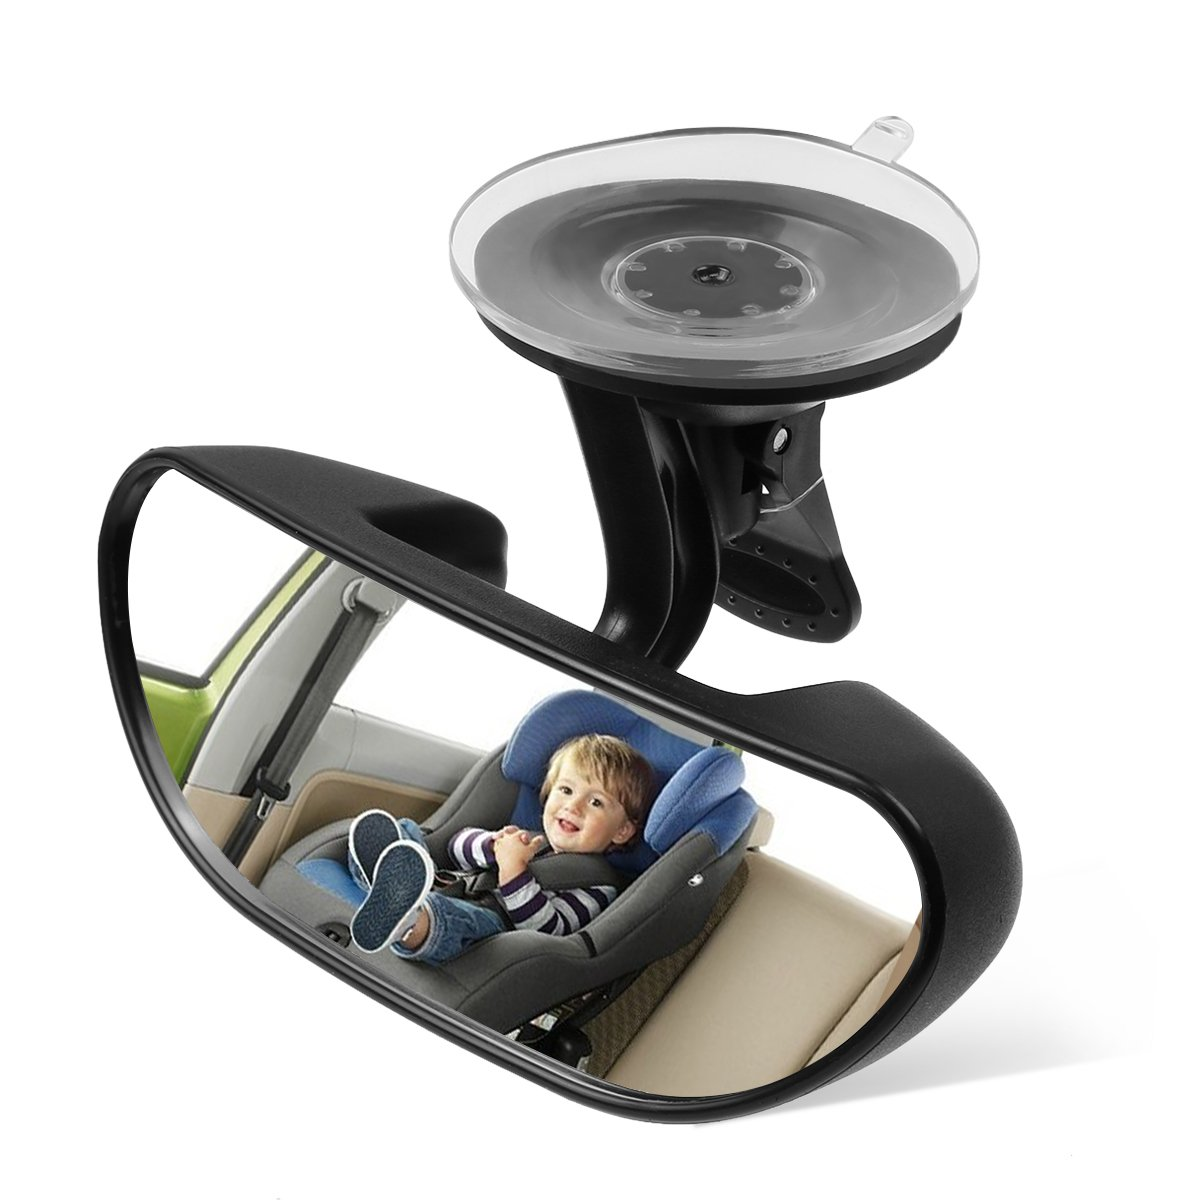 Ideapro Baby Car Backseat Mirror, Rear View Facing Back Seat Mirror Child Safety Rearview Adjustable Forward Baby Mirror for Infant(5.78'' 2.16'') by ideapro